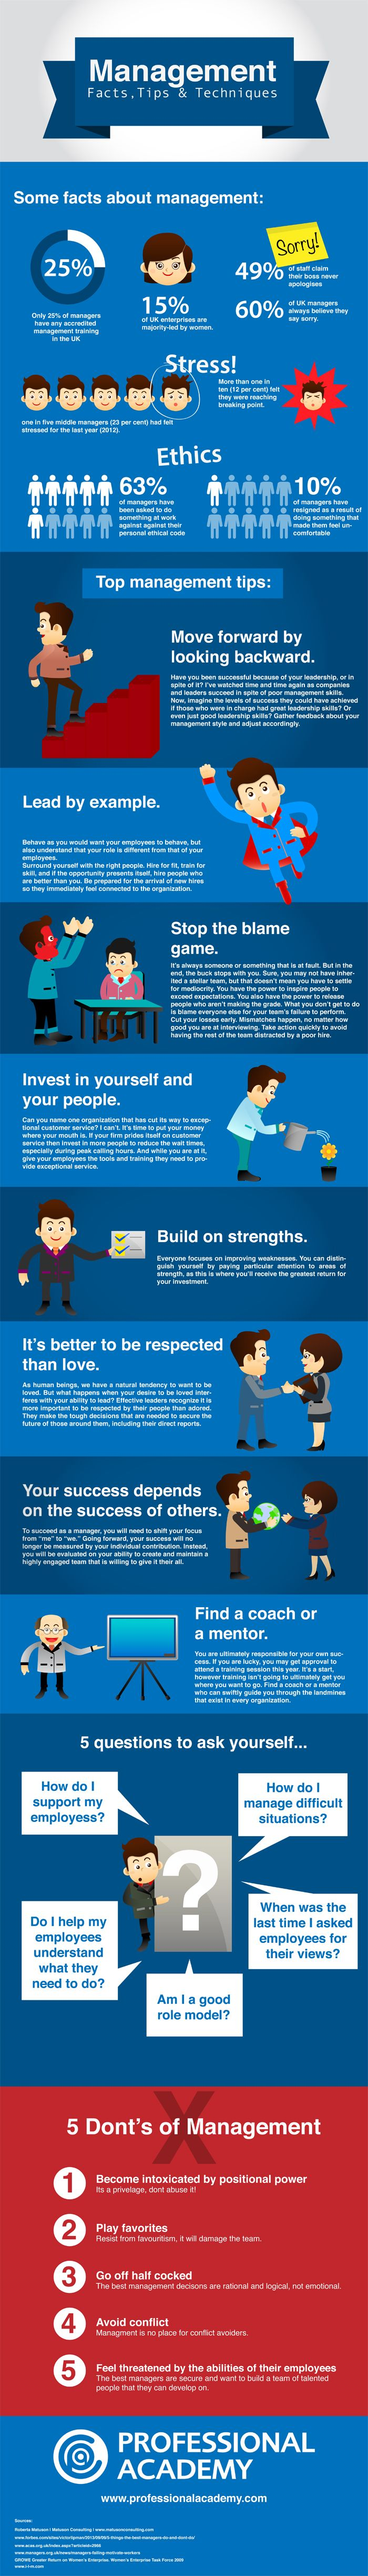 Management Tips Infographic - December's Original Infographic from Professional Academy. www.professionalacademy.com